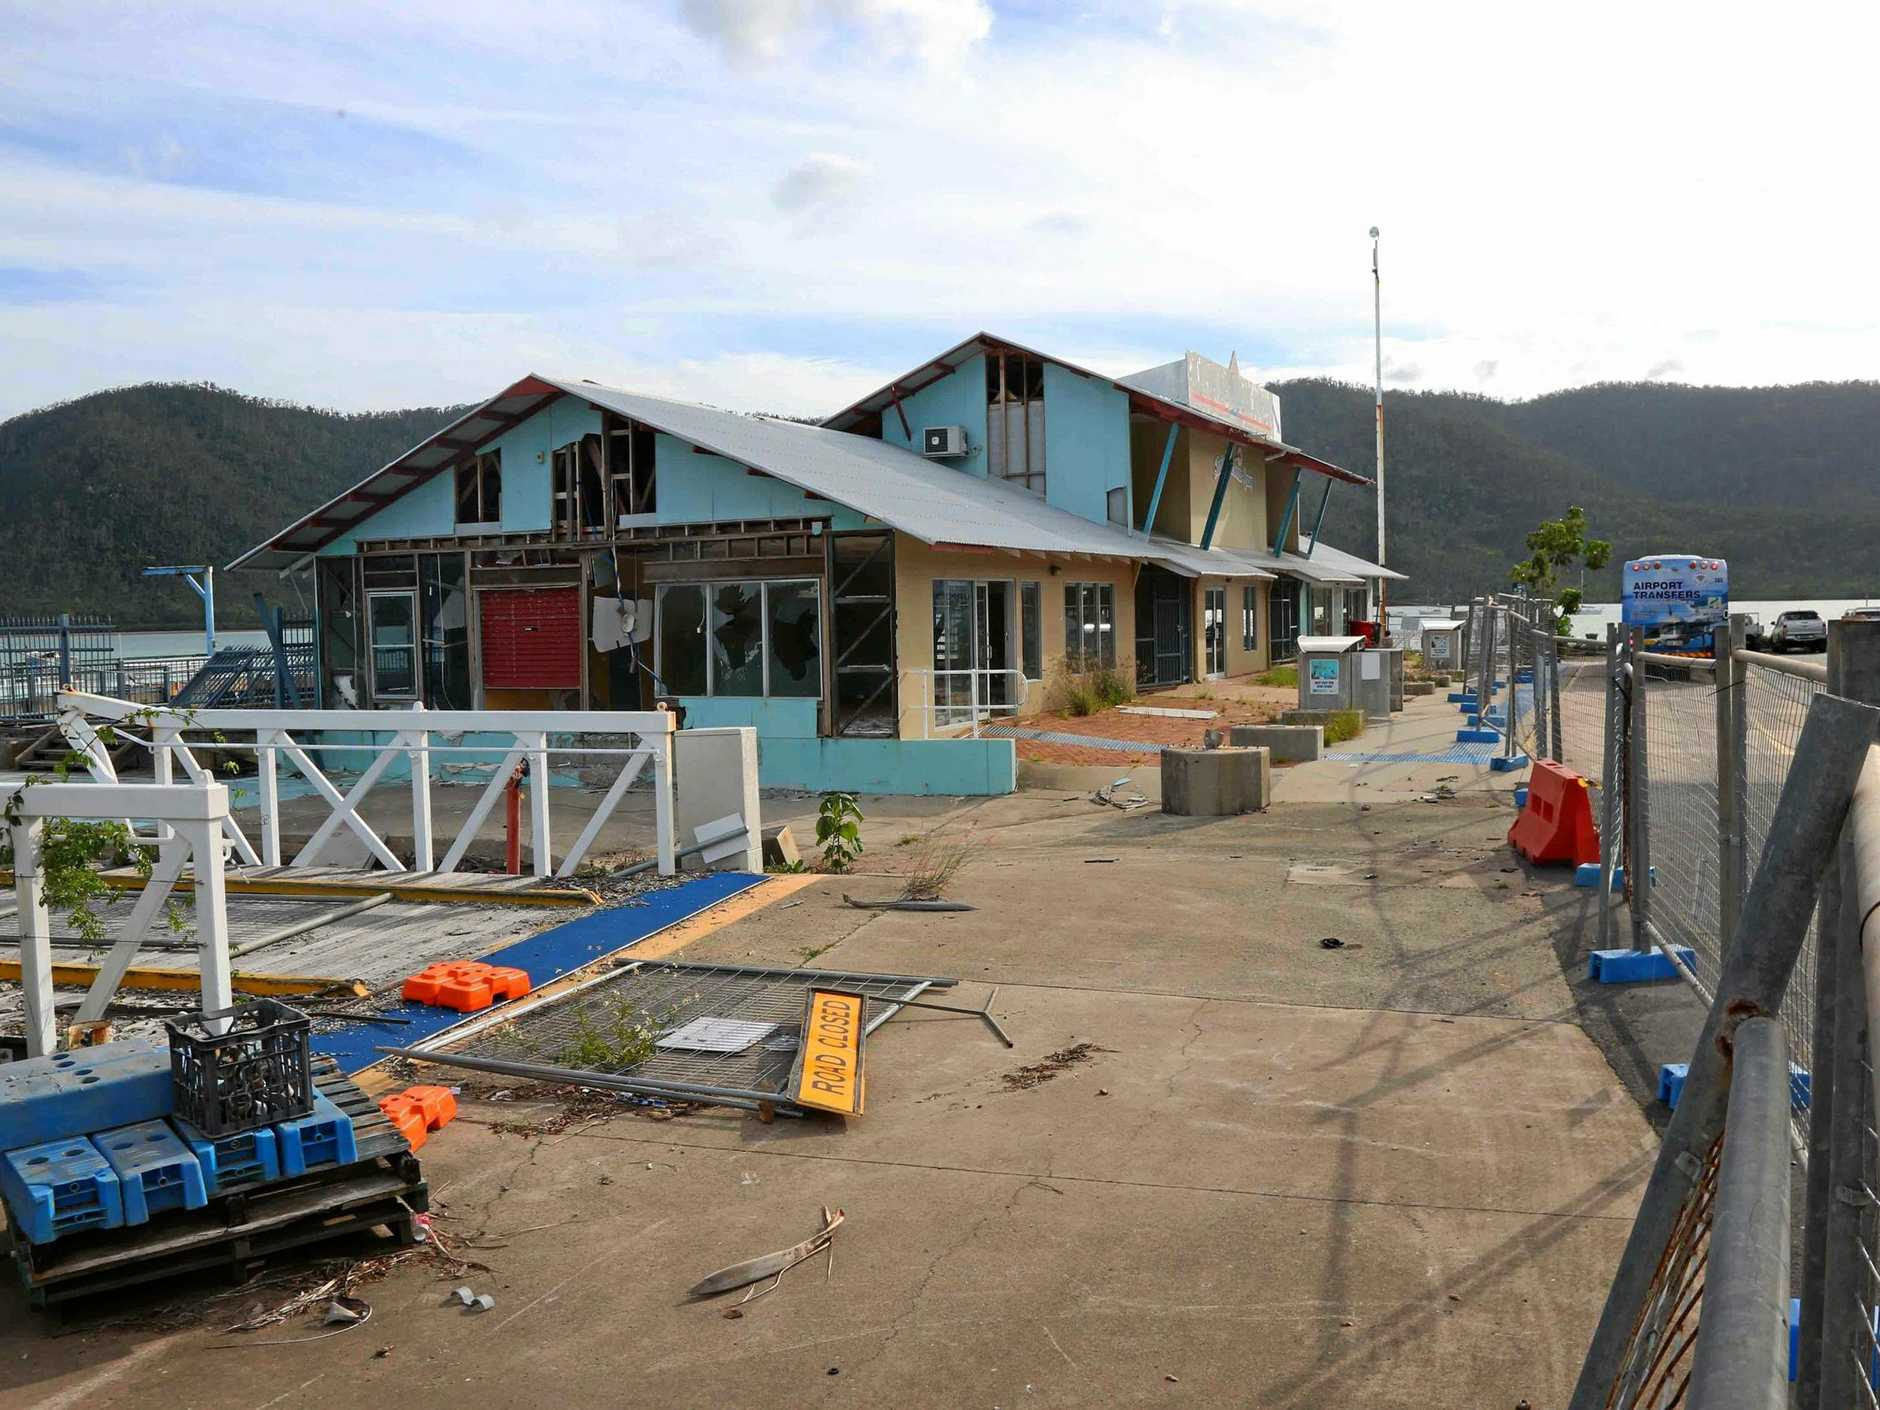 Mackay-based company Team Engineering Services Pty Ltd has been awarded the tender for the removal of the Lloyd Roberts Jetty at Shute Harbour.